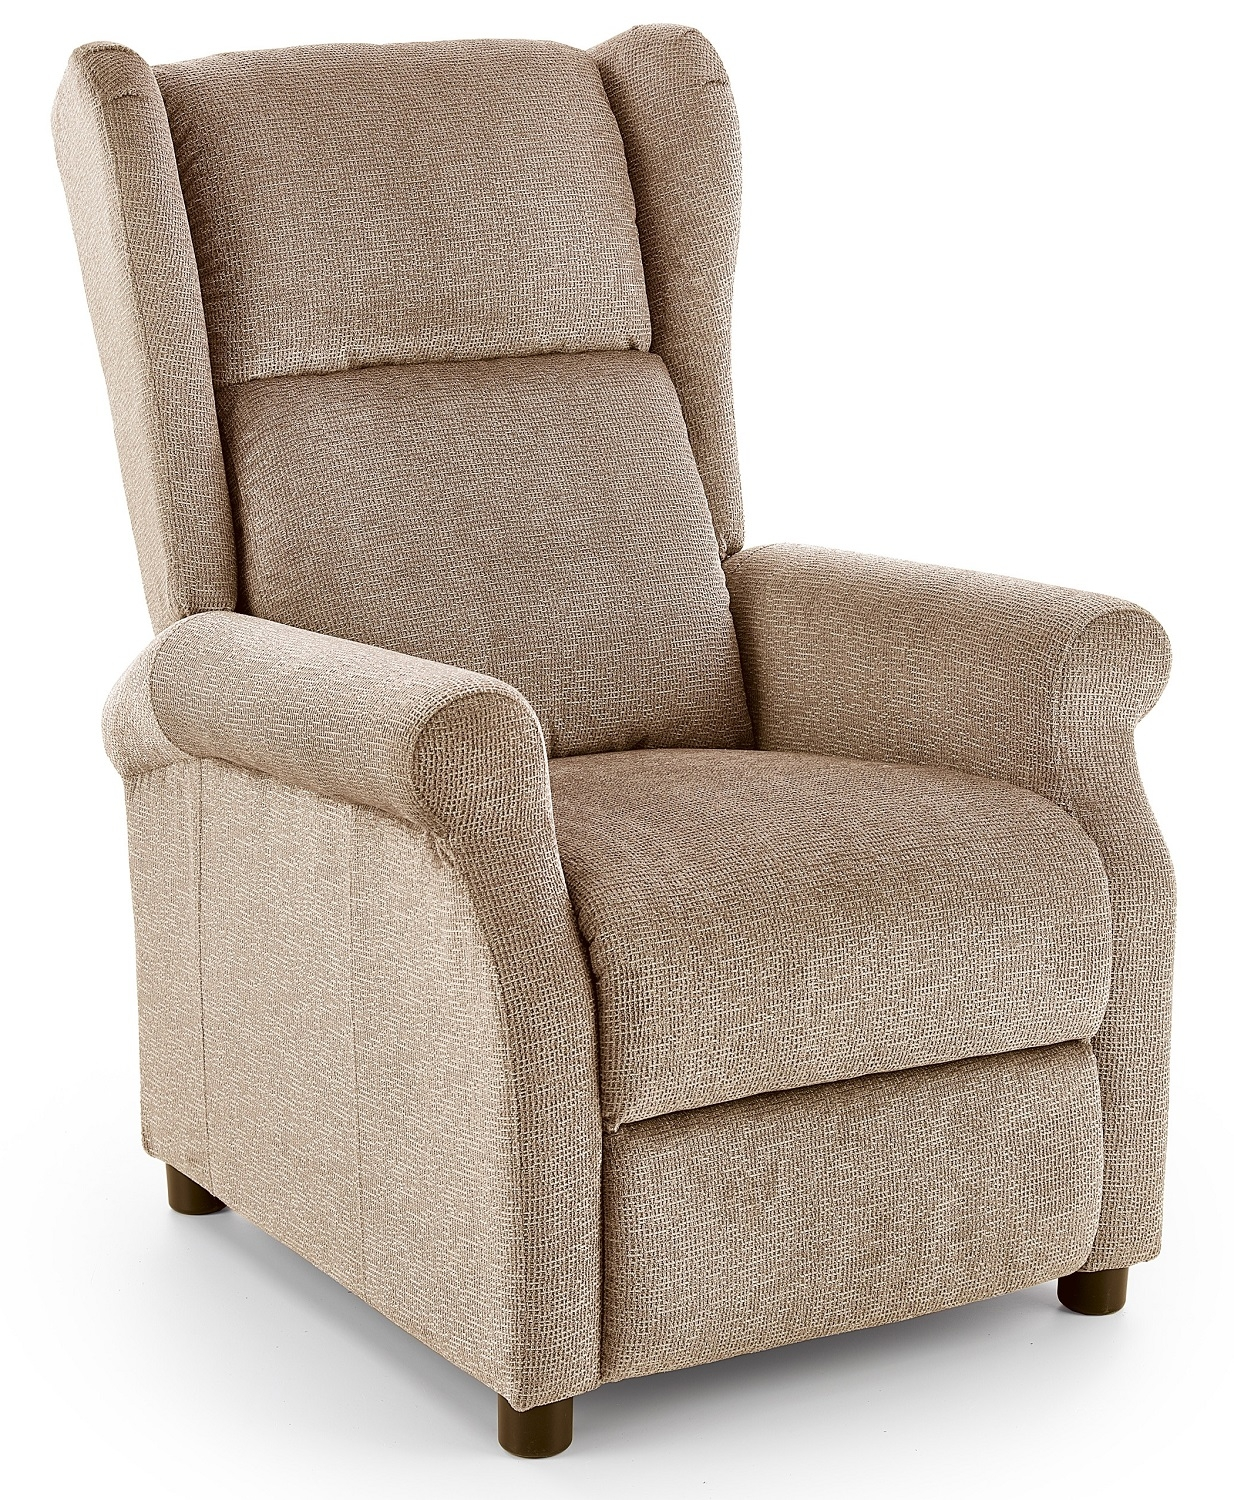 Fauteuil Agustin in beige